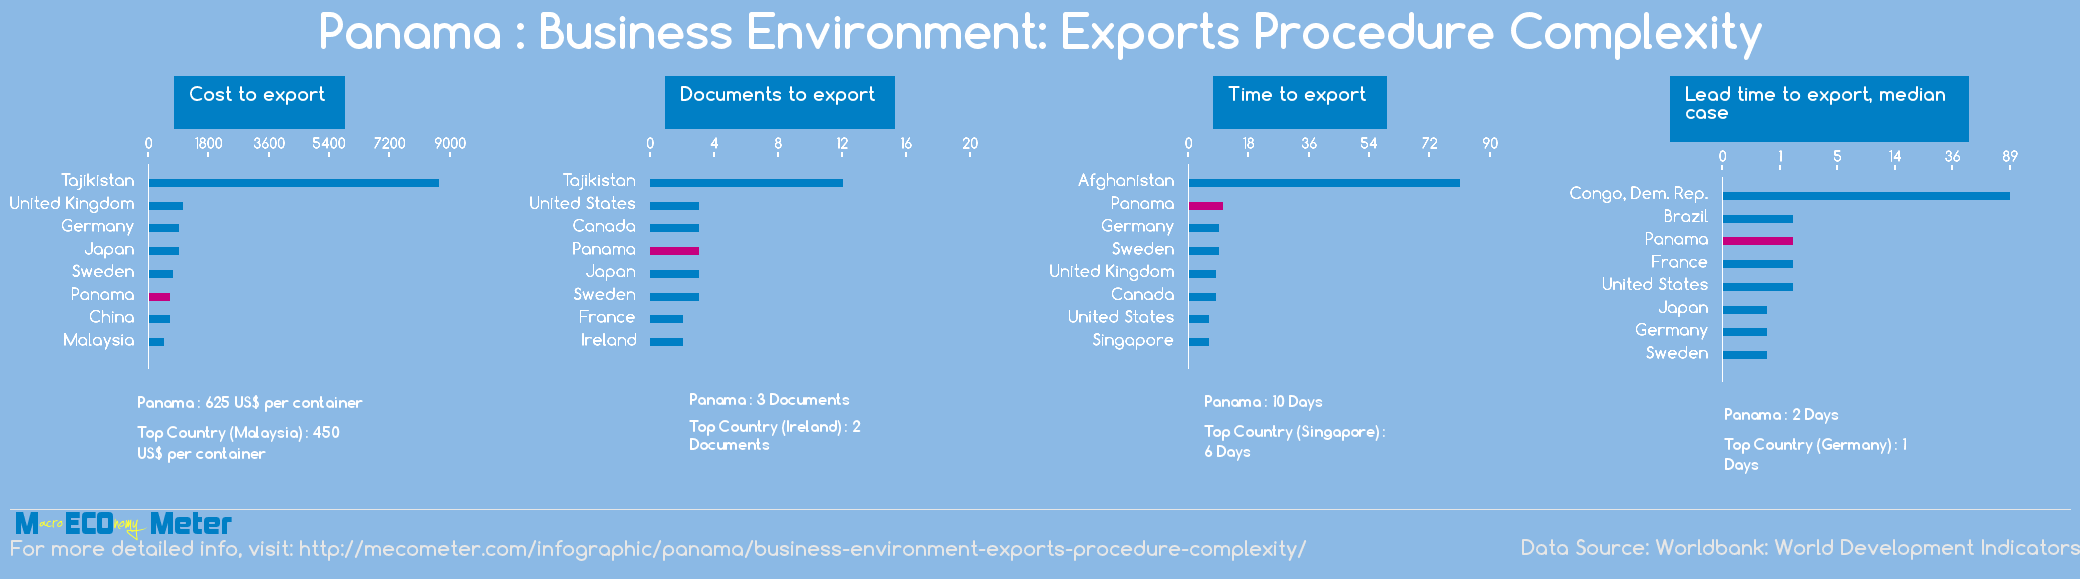 Panama : Business Environment: Exports Procedure Complexity